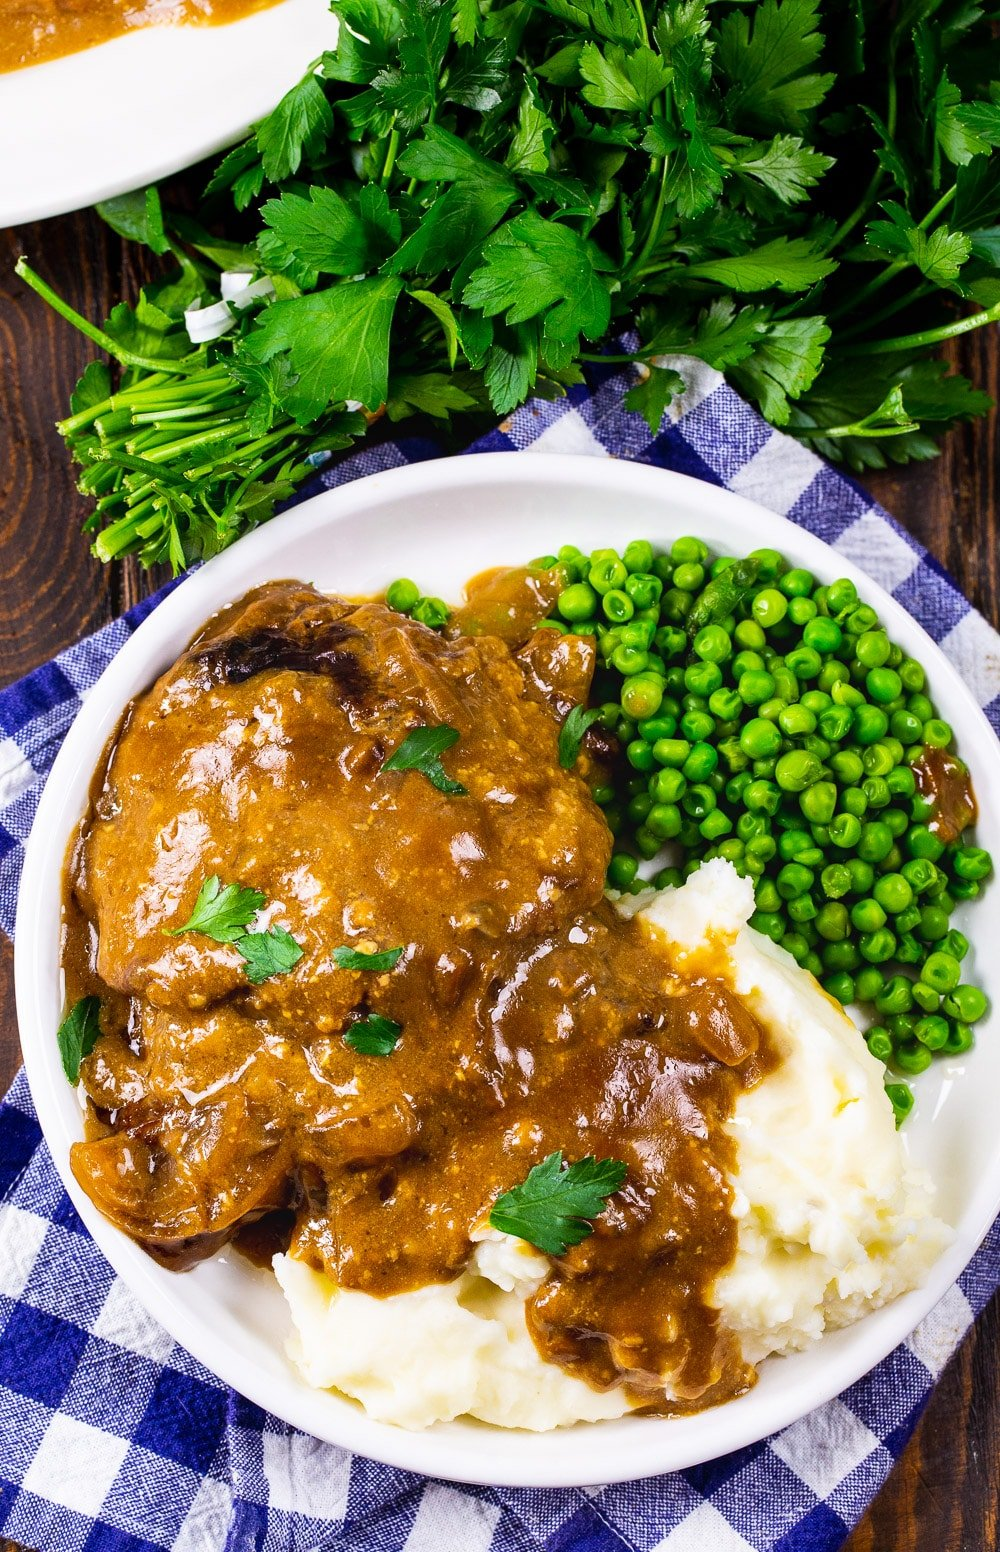 Cubed Steak with Gravy on a white plate.